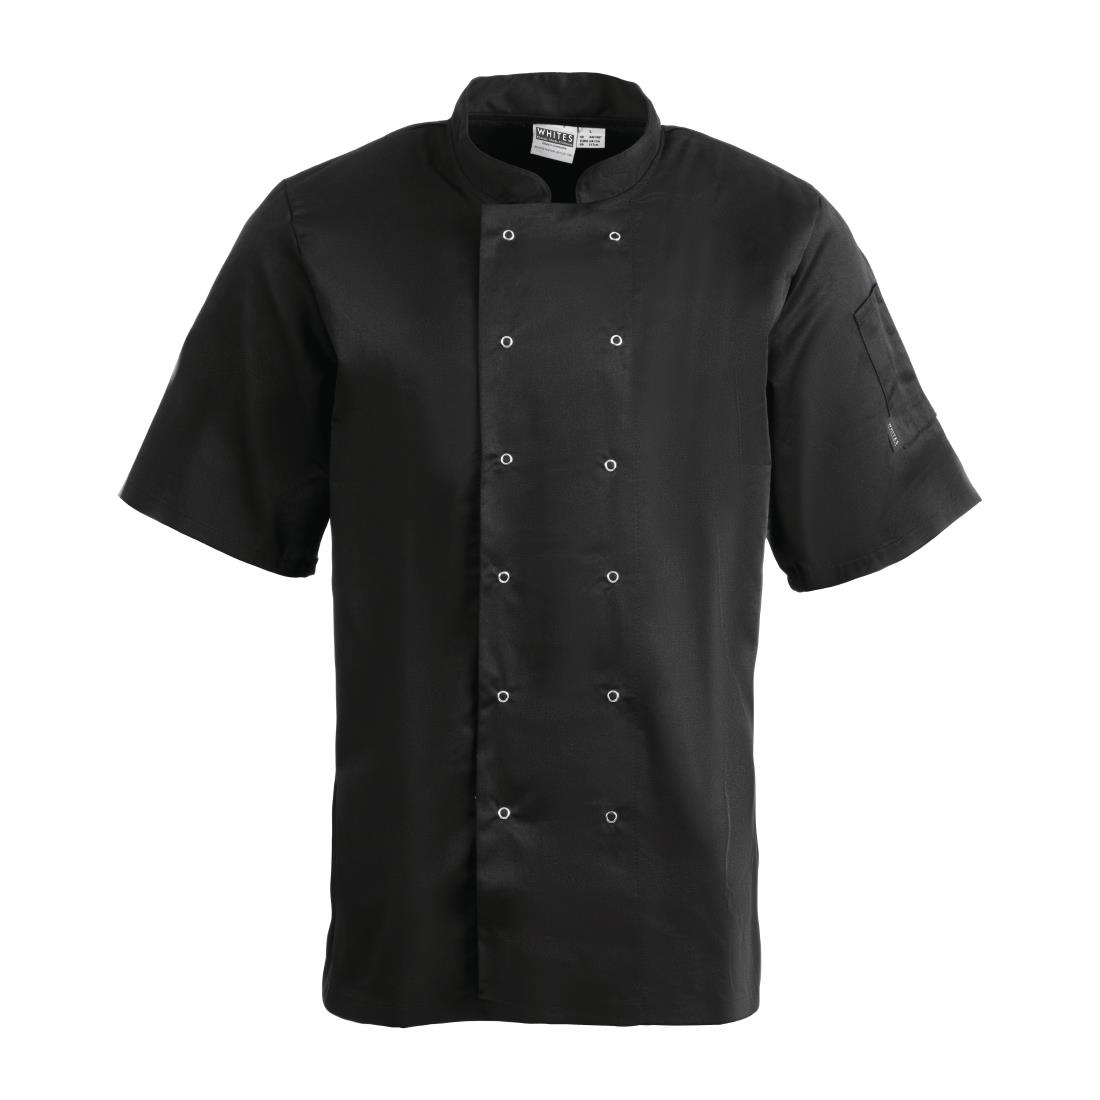 Click to view product details and reviews for Whites Vegas Unisex Chefs Jacket Short Sleeve Black L.